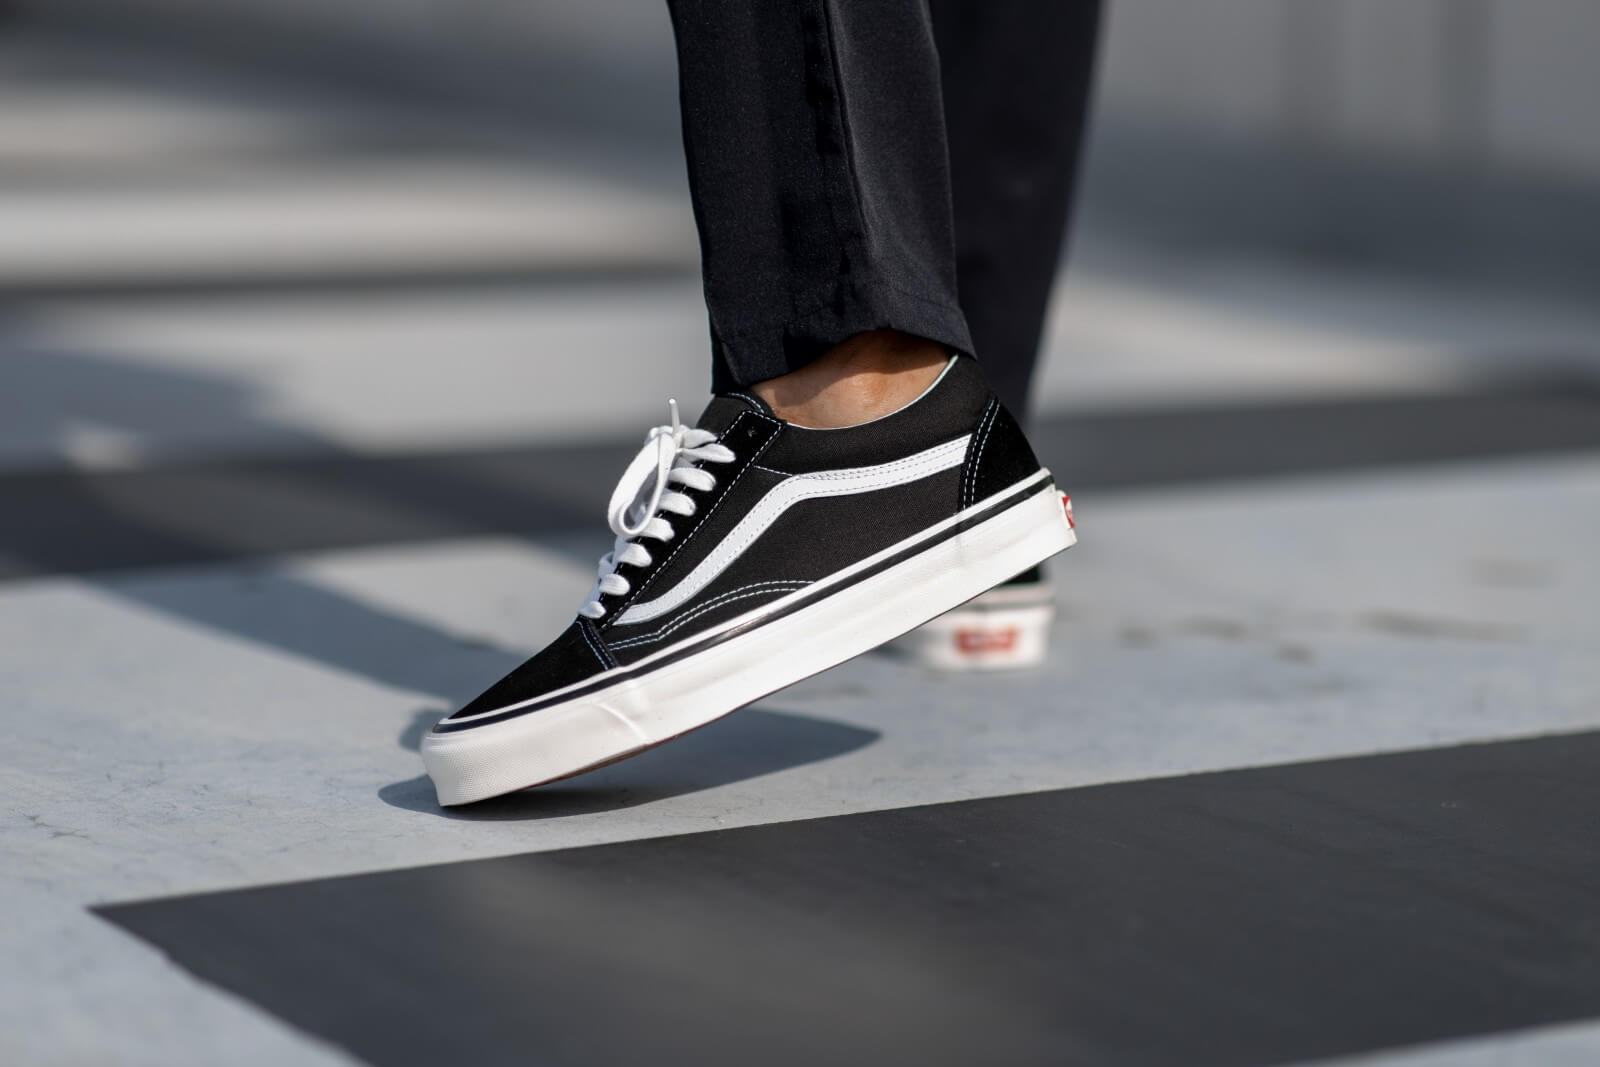 Vans Old Skool 36 DX Anaheim Factory BlackTrue White VN0A38G2PXC1